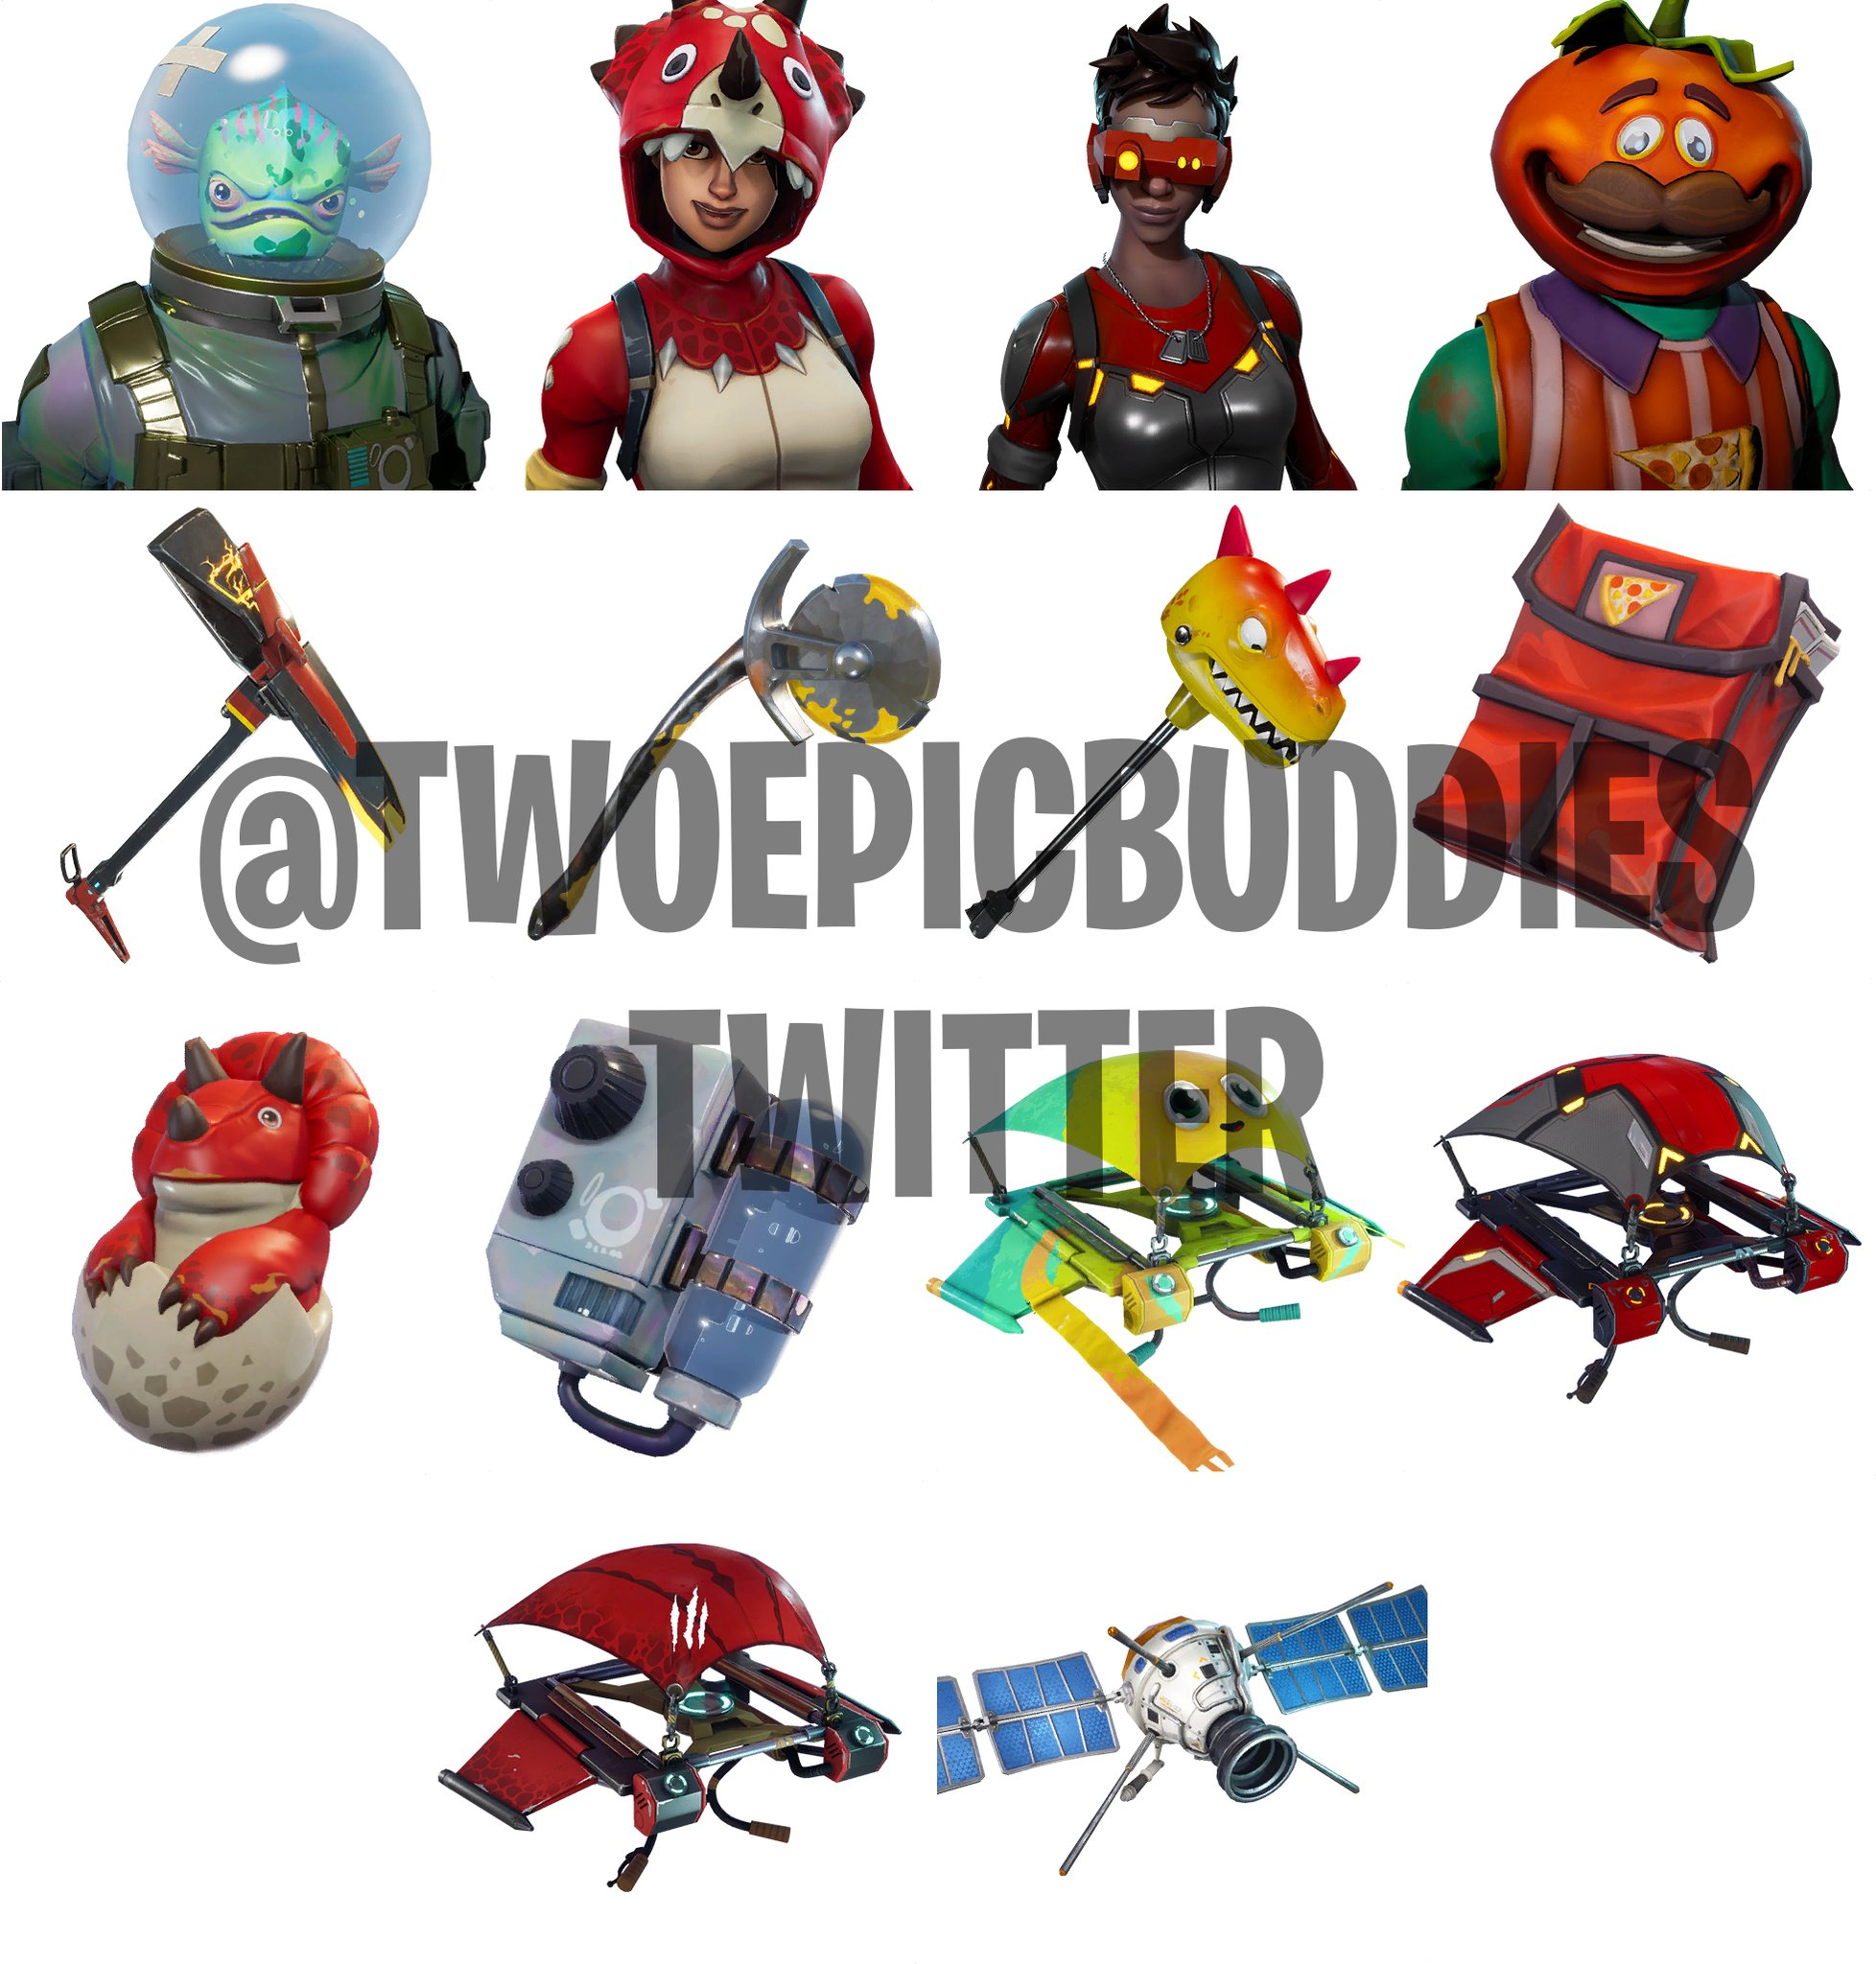 If you're looking for a full list of all fortnite skins then you've come to the right place. Fish Head Outfit Satellite Glider And Other Ridiculous Cosmetics Datamined From Fortnite Patch 3 5 0 Vg247